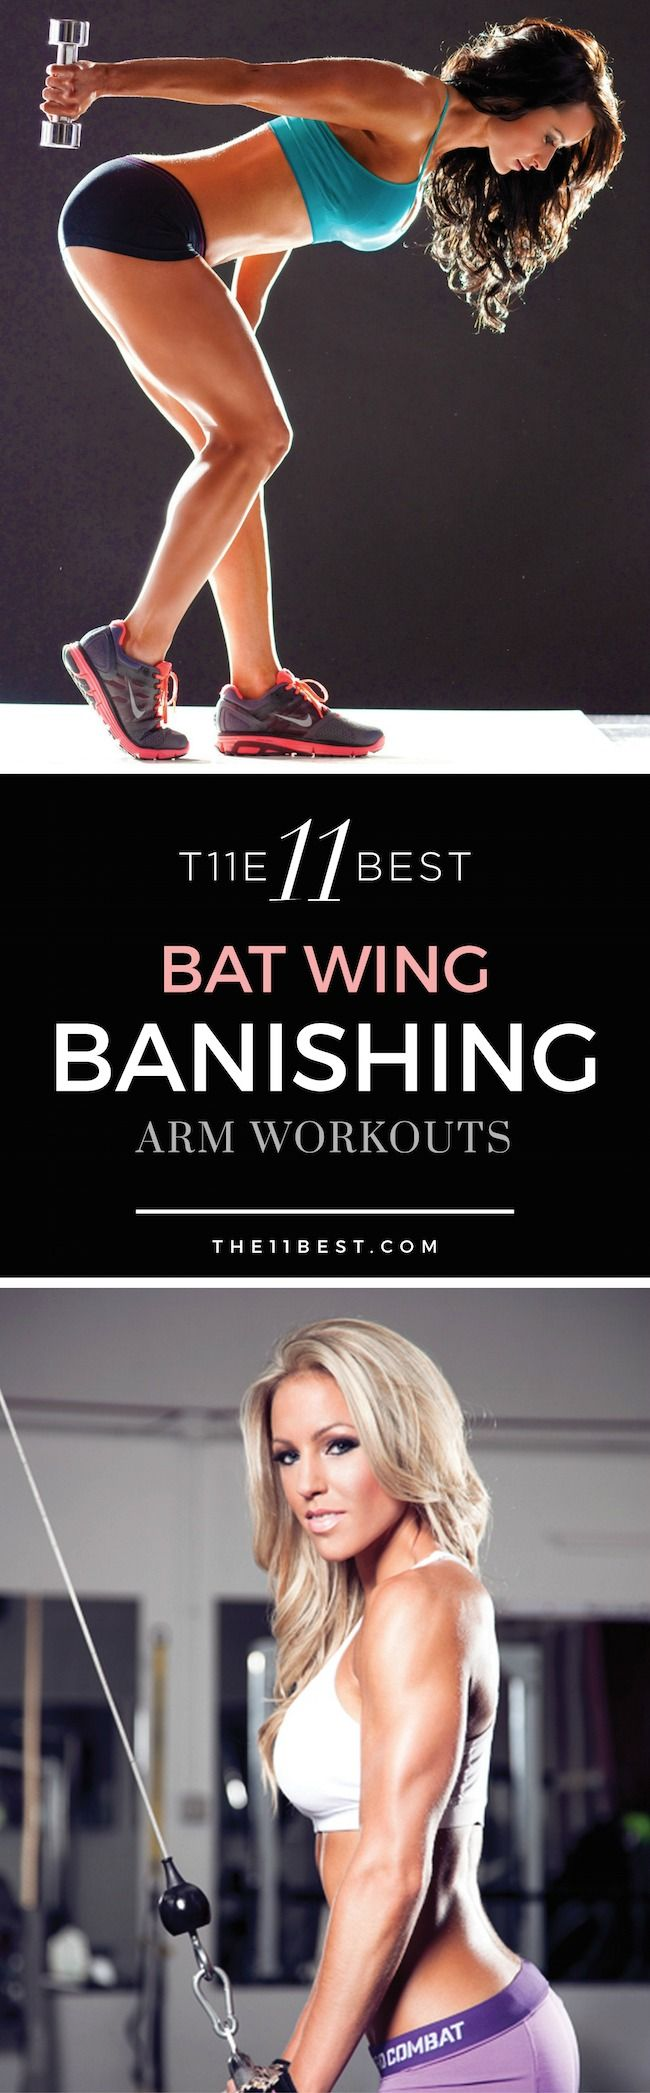 Arms feeling a bit flabby? Do they jiggle around while you're waving hello or goodbye? Those are called Bat Wings and almost all women get them. With some focused arm workouts, we can tone, tighten, and beautify that flab. Here are the 11 Best Bat Wing Banishing Arm Workouts: